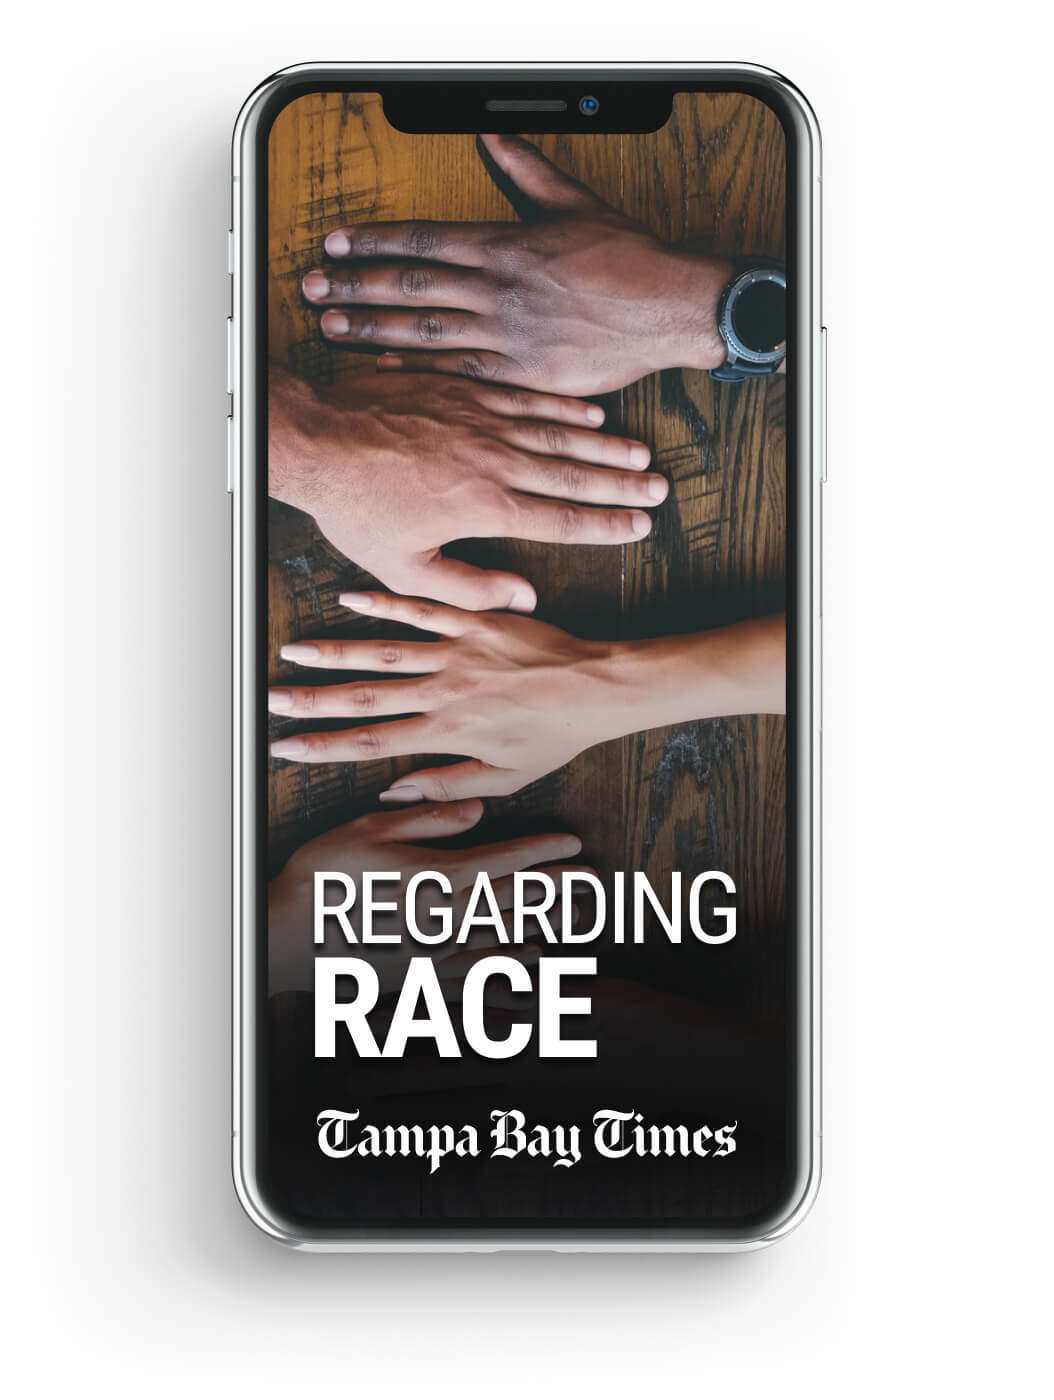 The Tampa Bay Times 'Regarding Race' newsletter